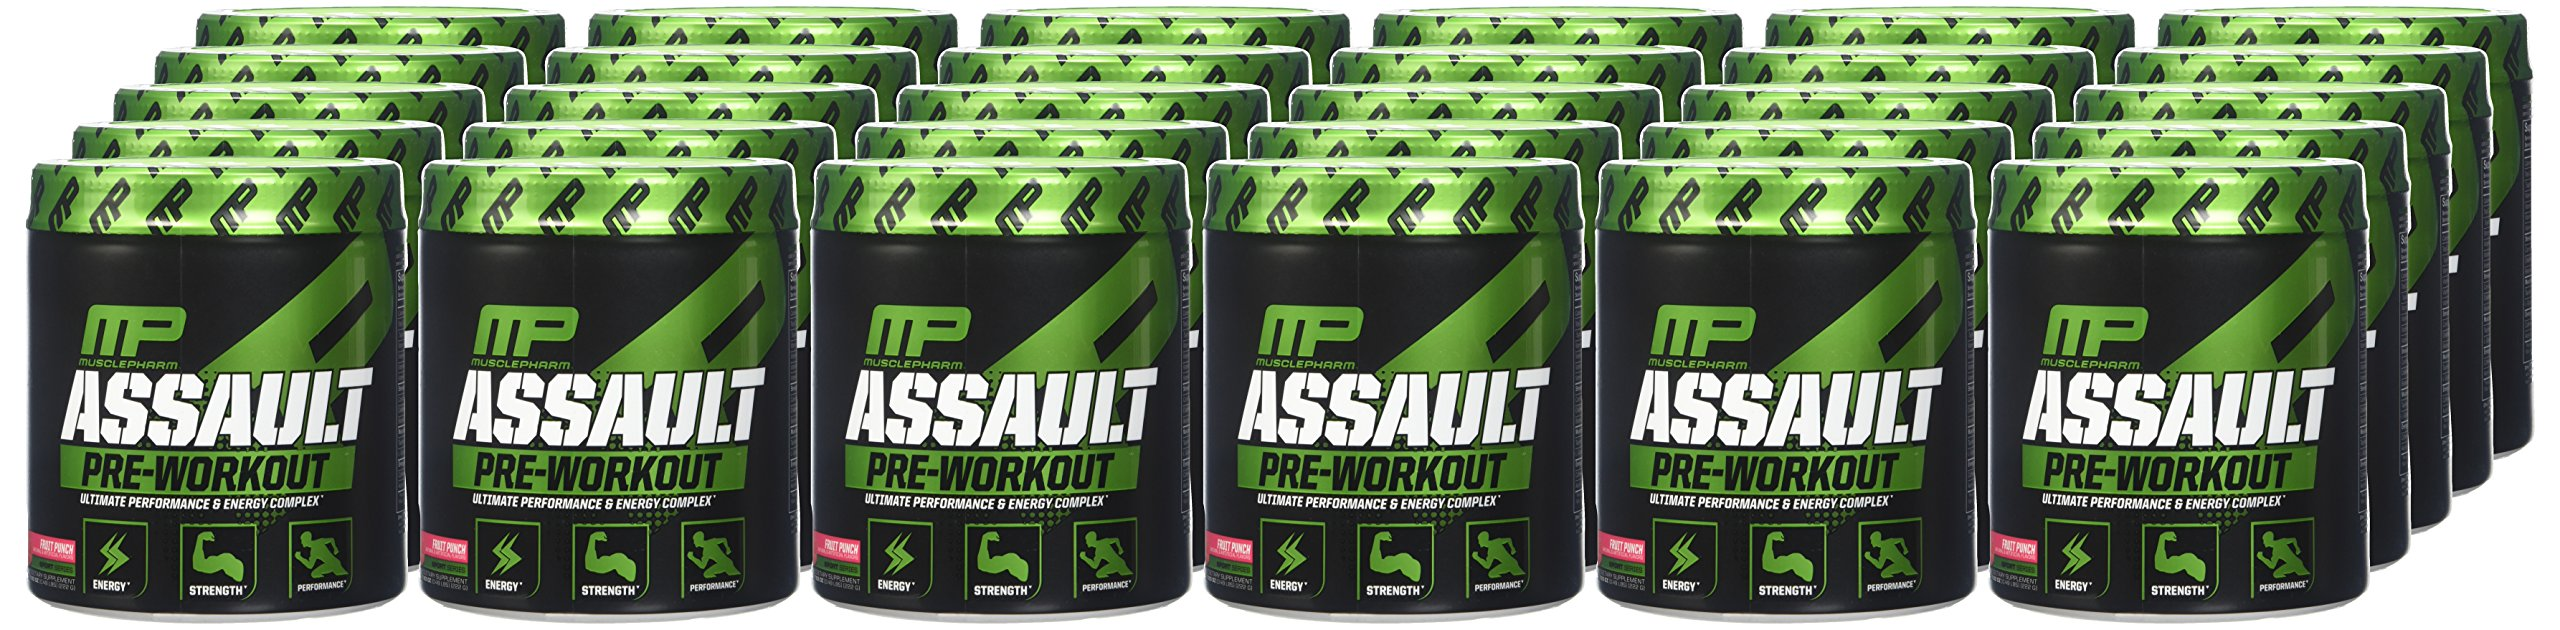 MusclePharm Assault Pre Workout Powder, Pre Workout Creatine for Energy, Focus, Strength, and Endurance with Creatine, Taurine, and Caffeine, Fruit Punch, 30 Servings